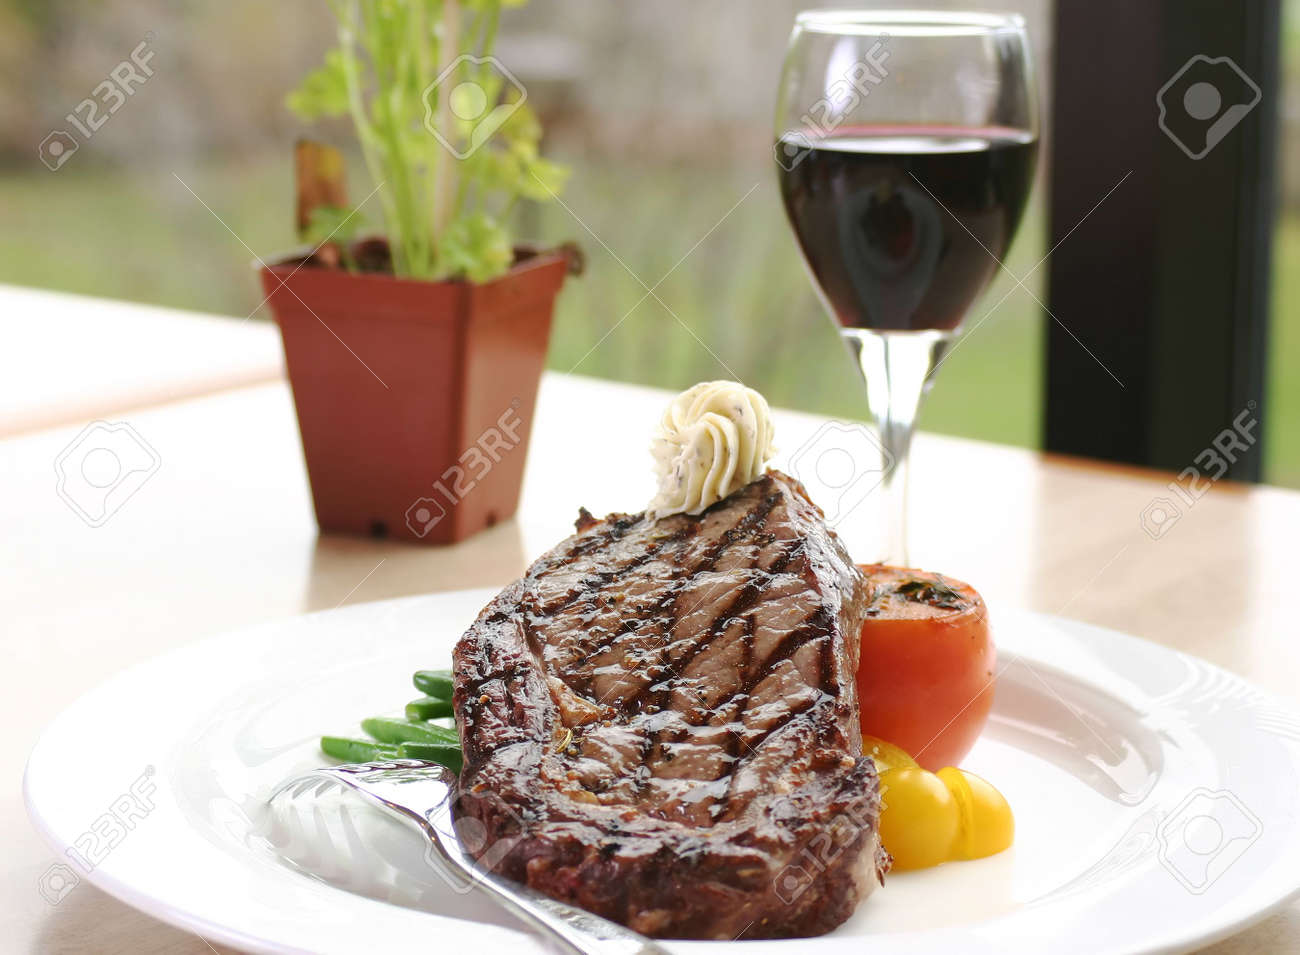 12oz ribeye steak topped with truffle butter and grilled tomato. Served with red wine. Stock Photo - 220565